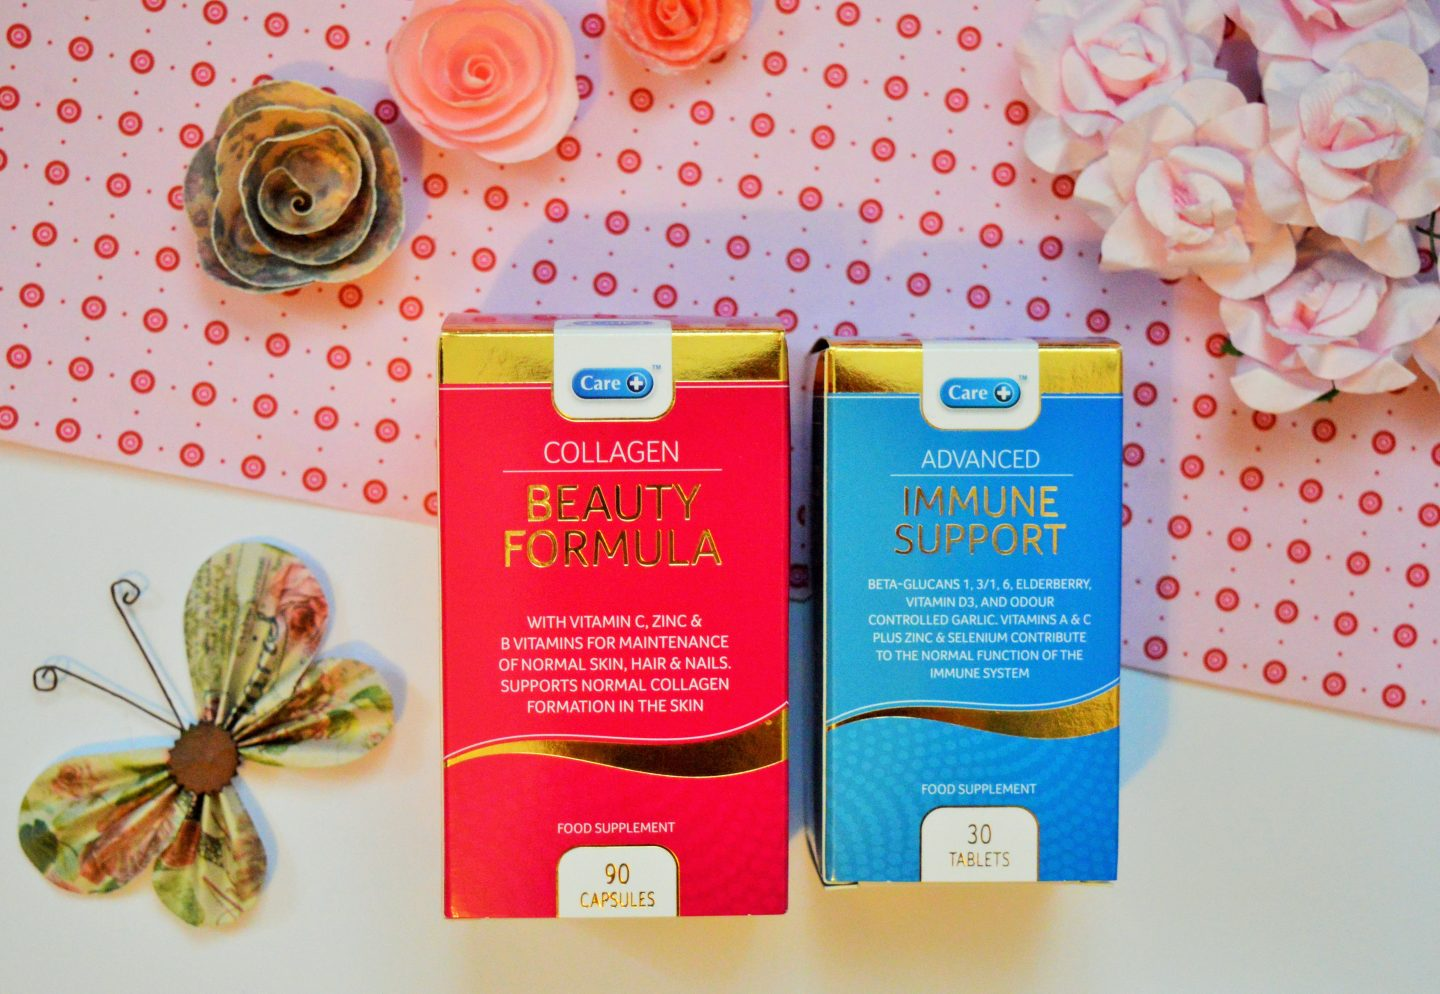 Review: Care Advanced Immune Support and Care Collagen Beauty Formula